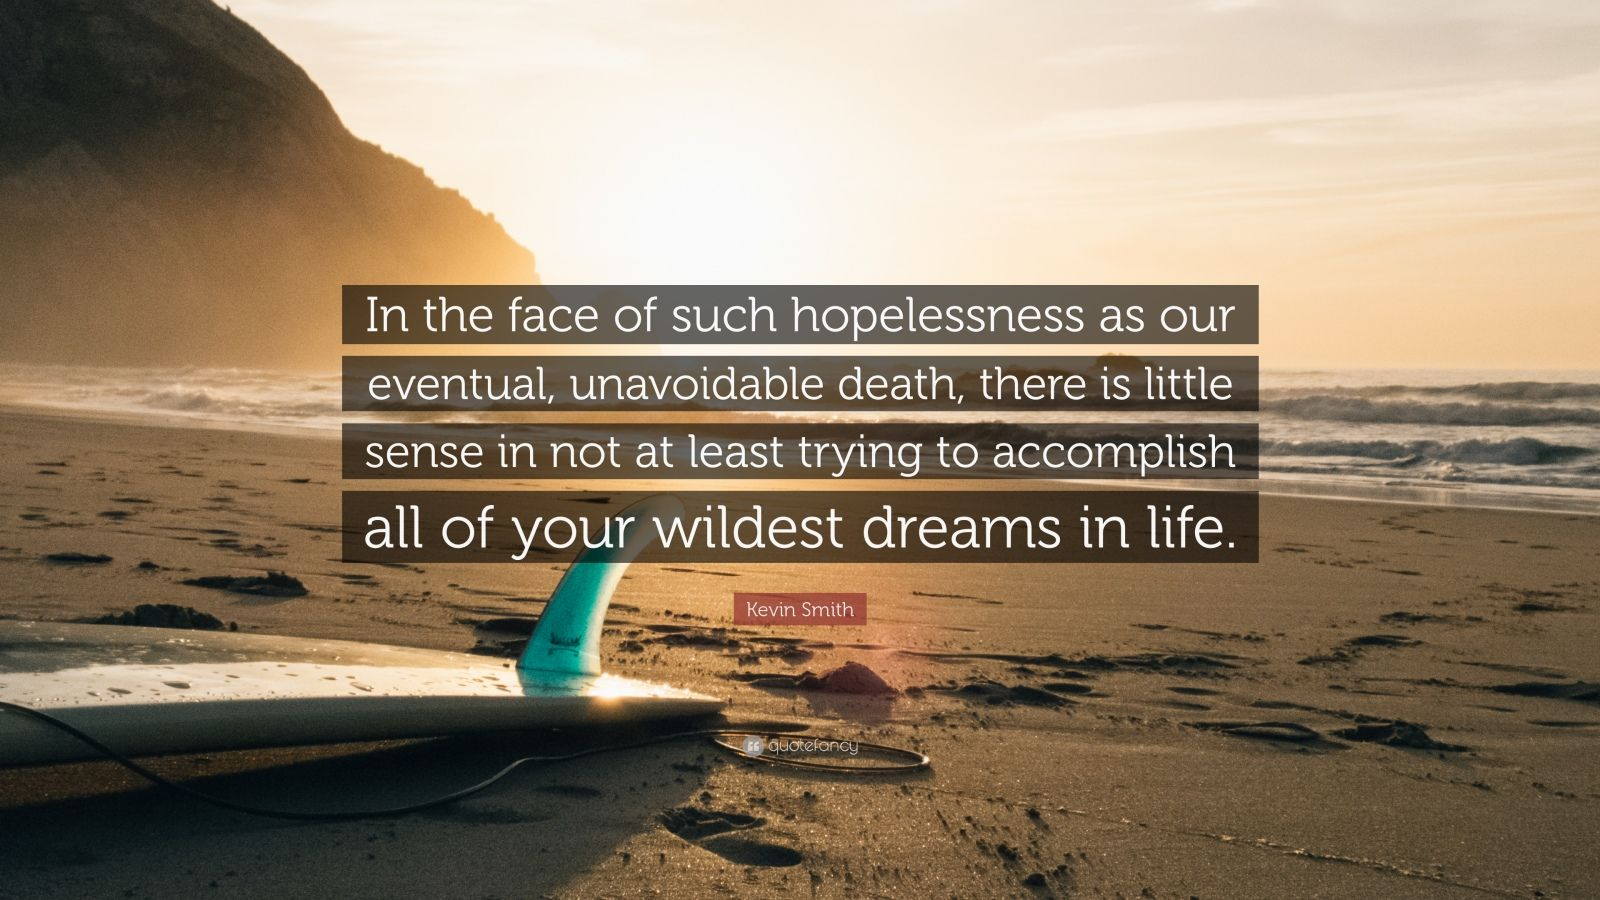 [Image] Your wildest dreams